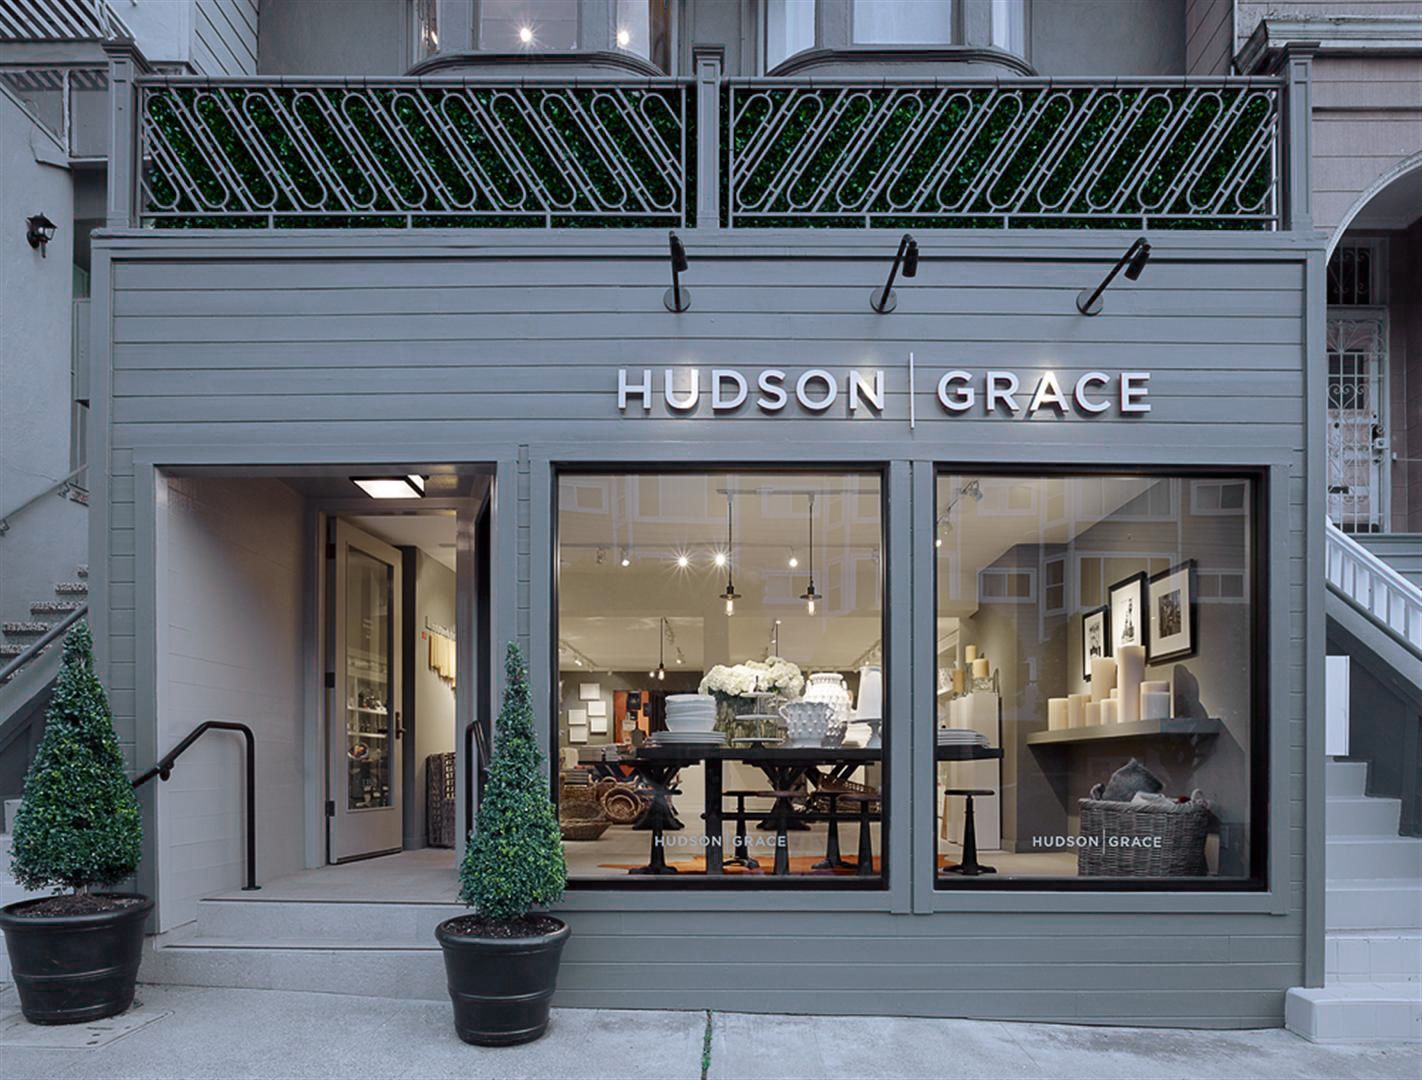 Hudson Grace our friends and neighbors on Sacramento